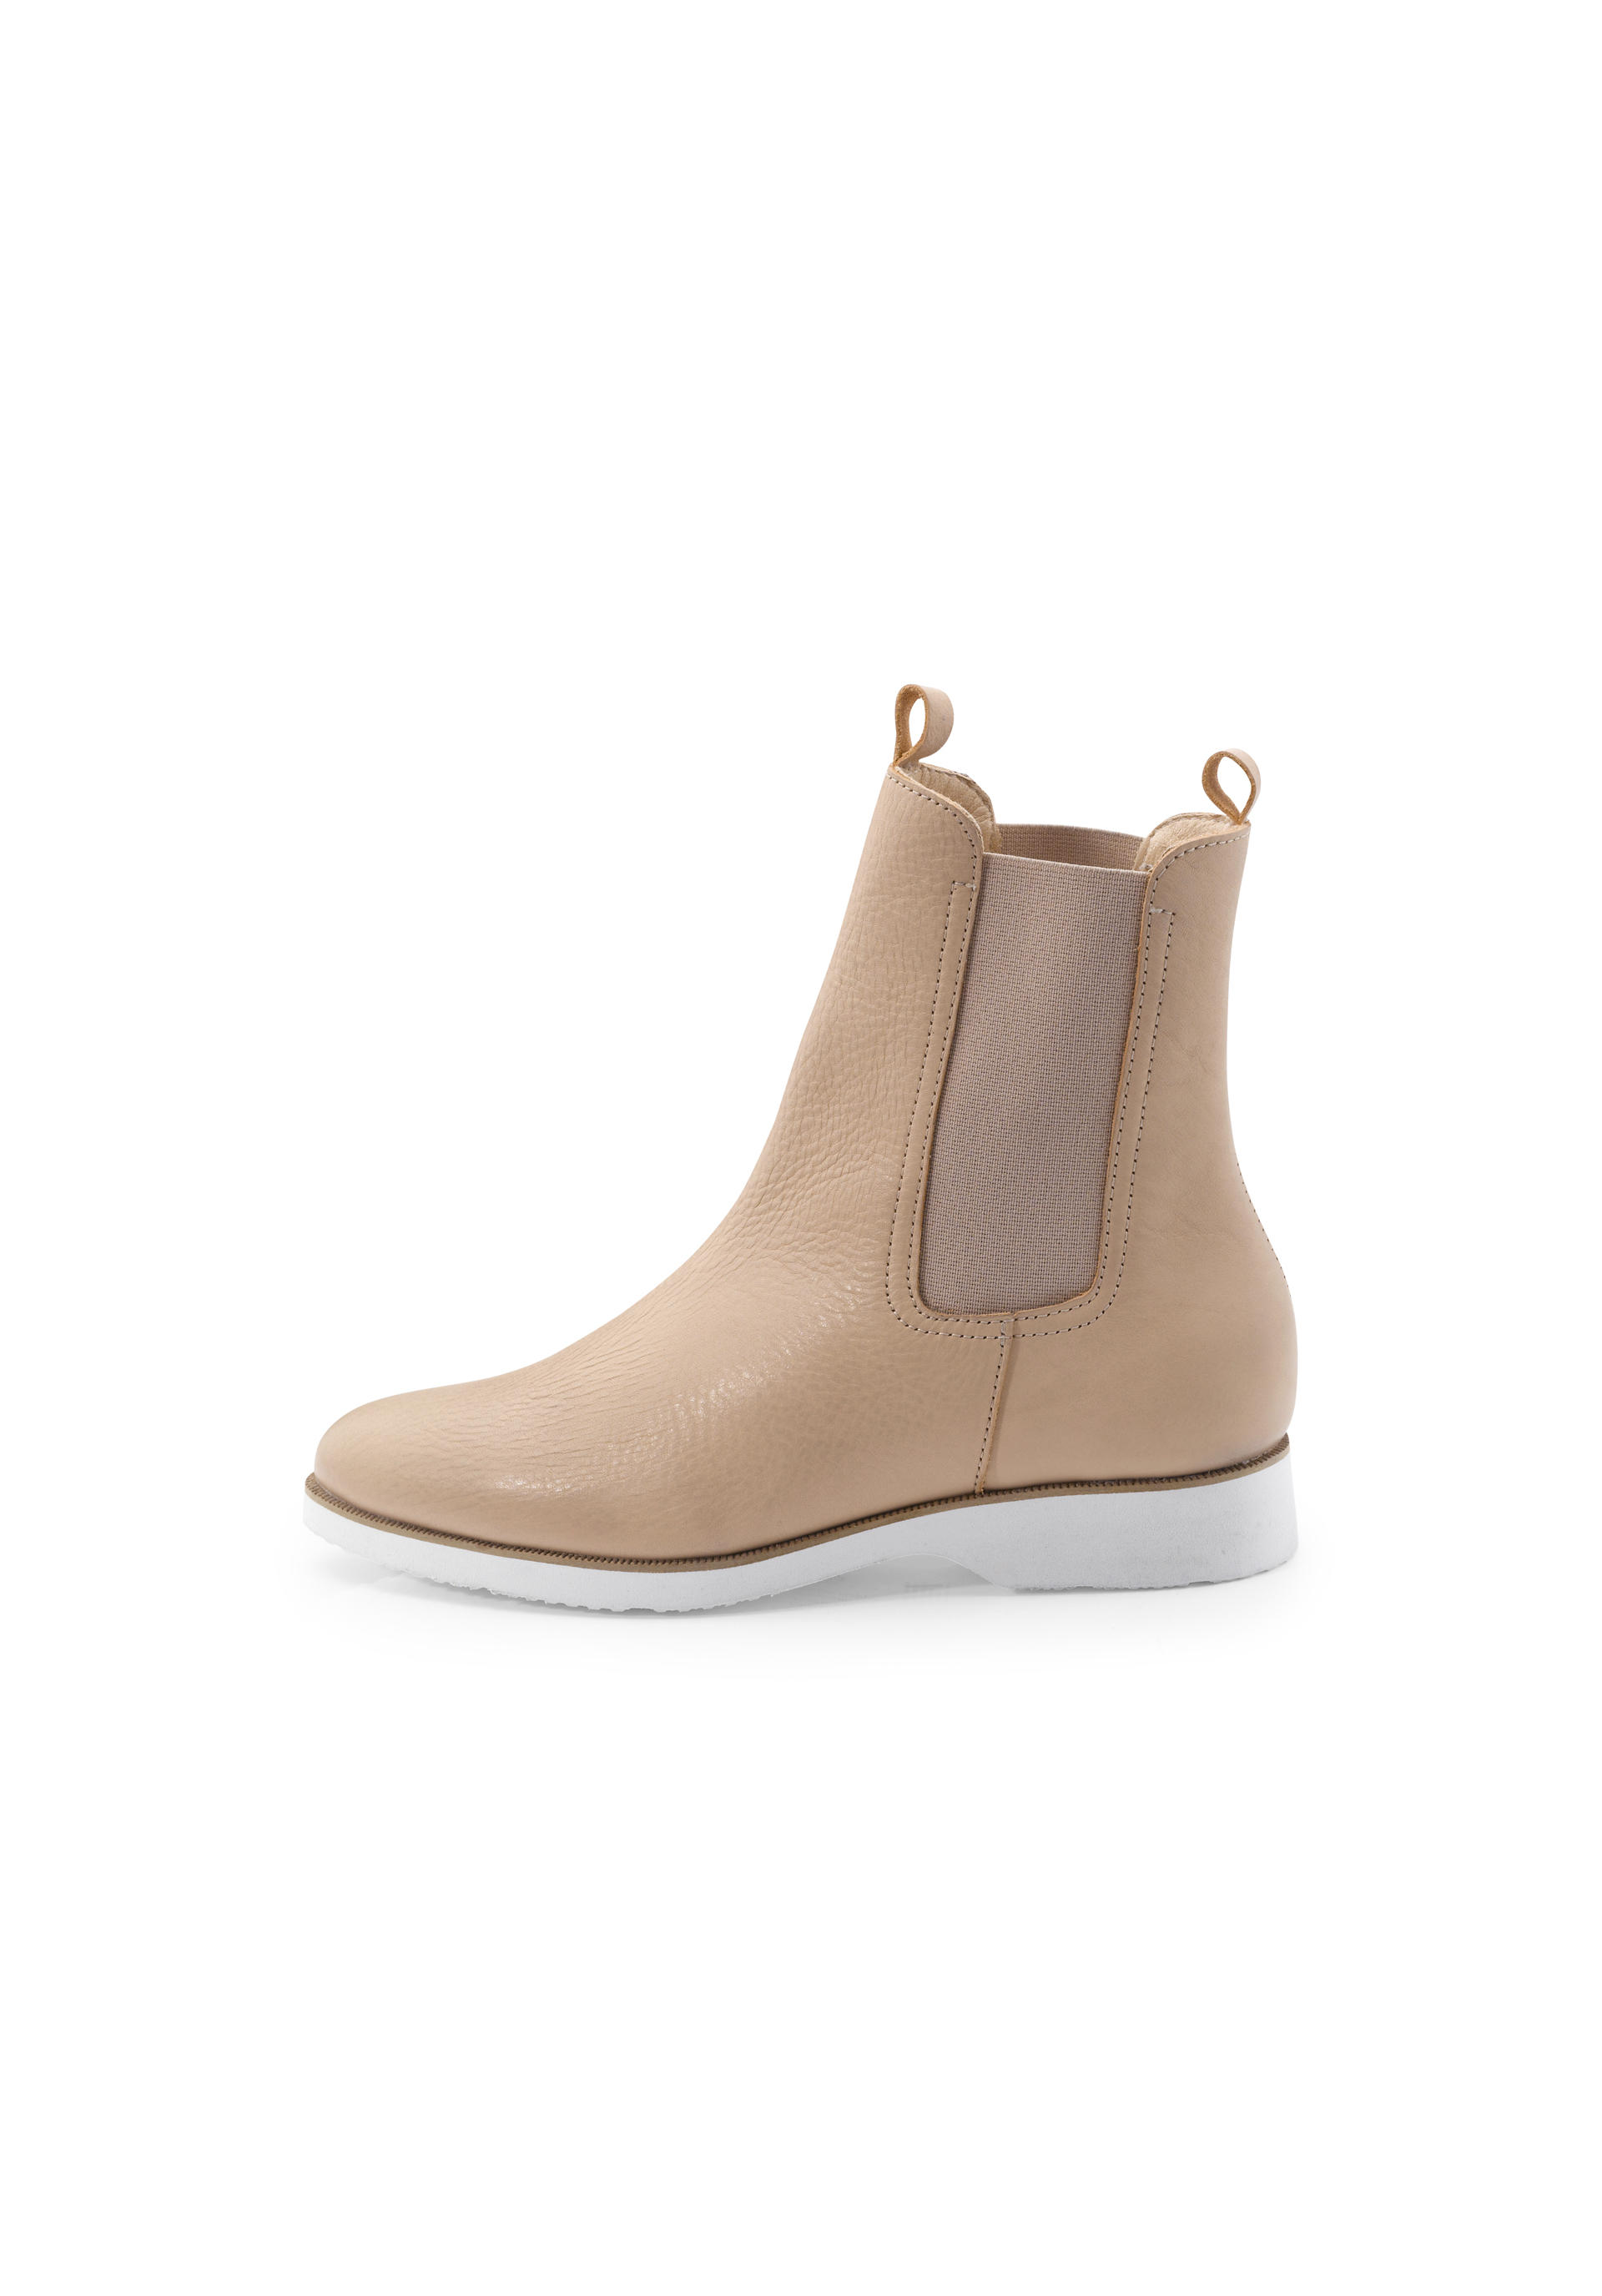 detailed look aaeae ffad7 Damen Chelsea Boots von hessnatur